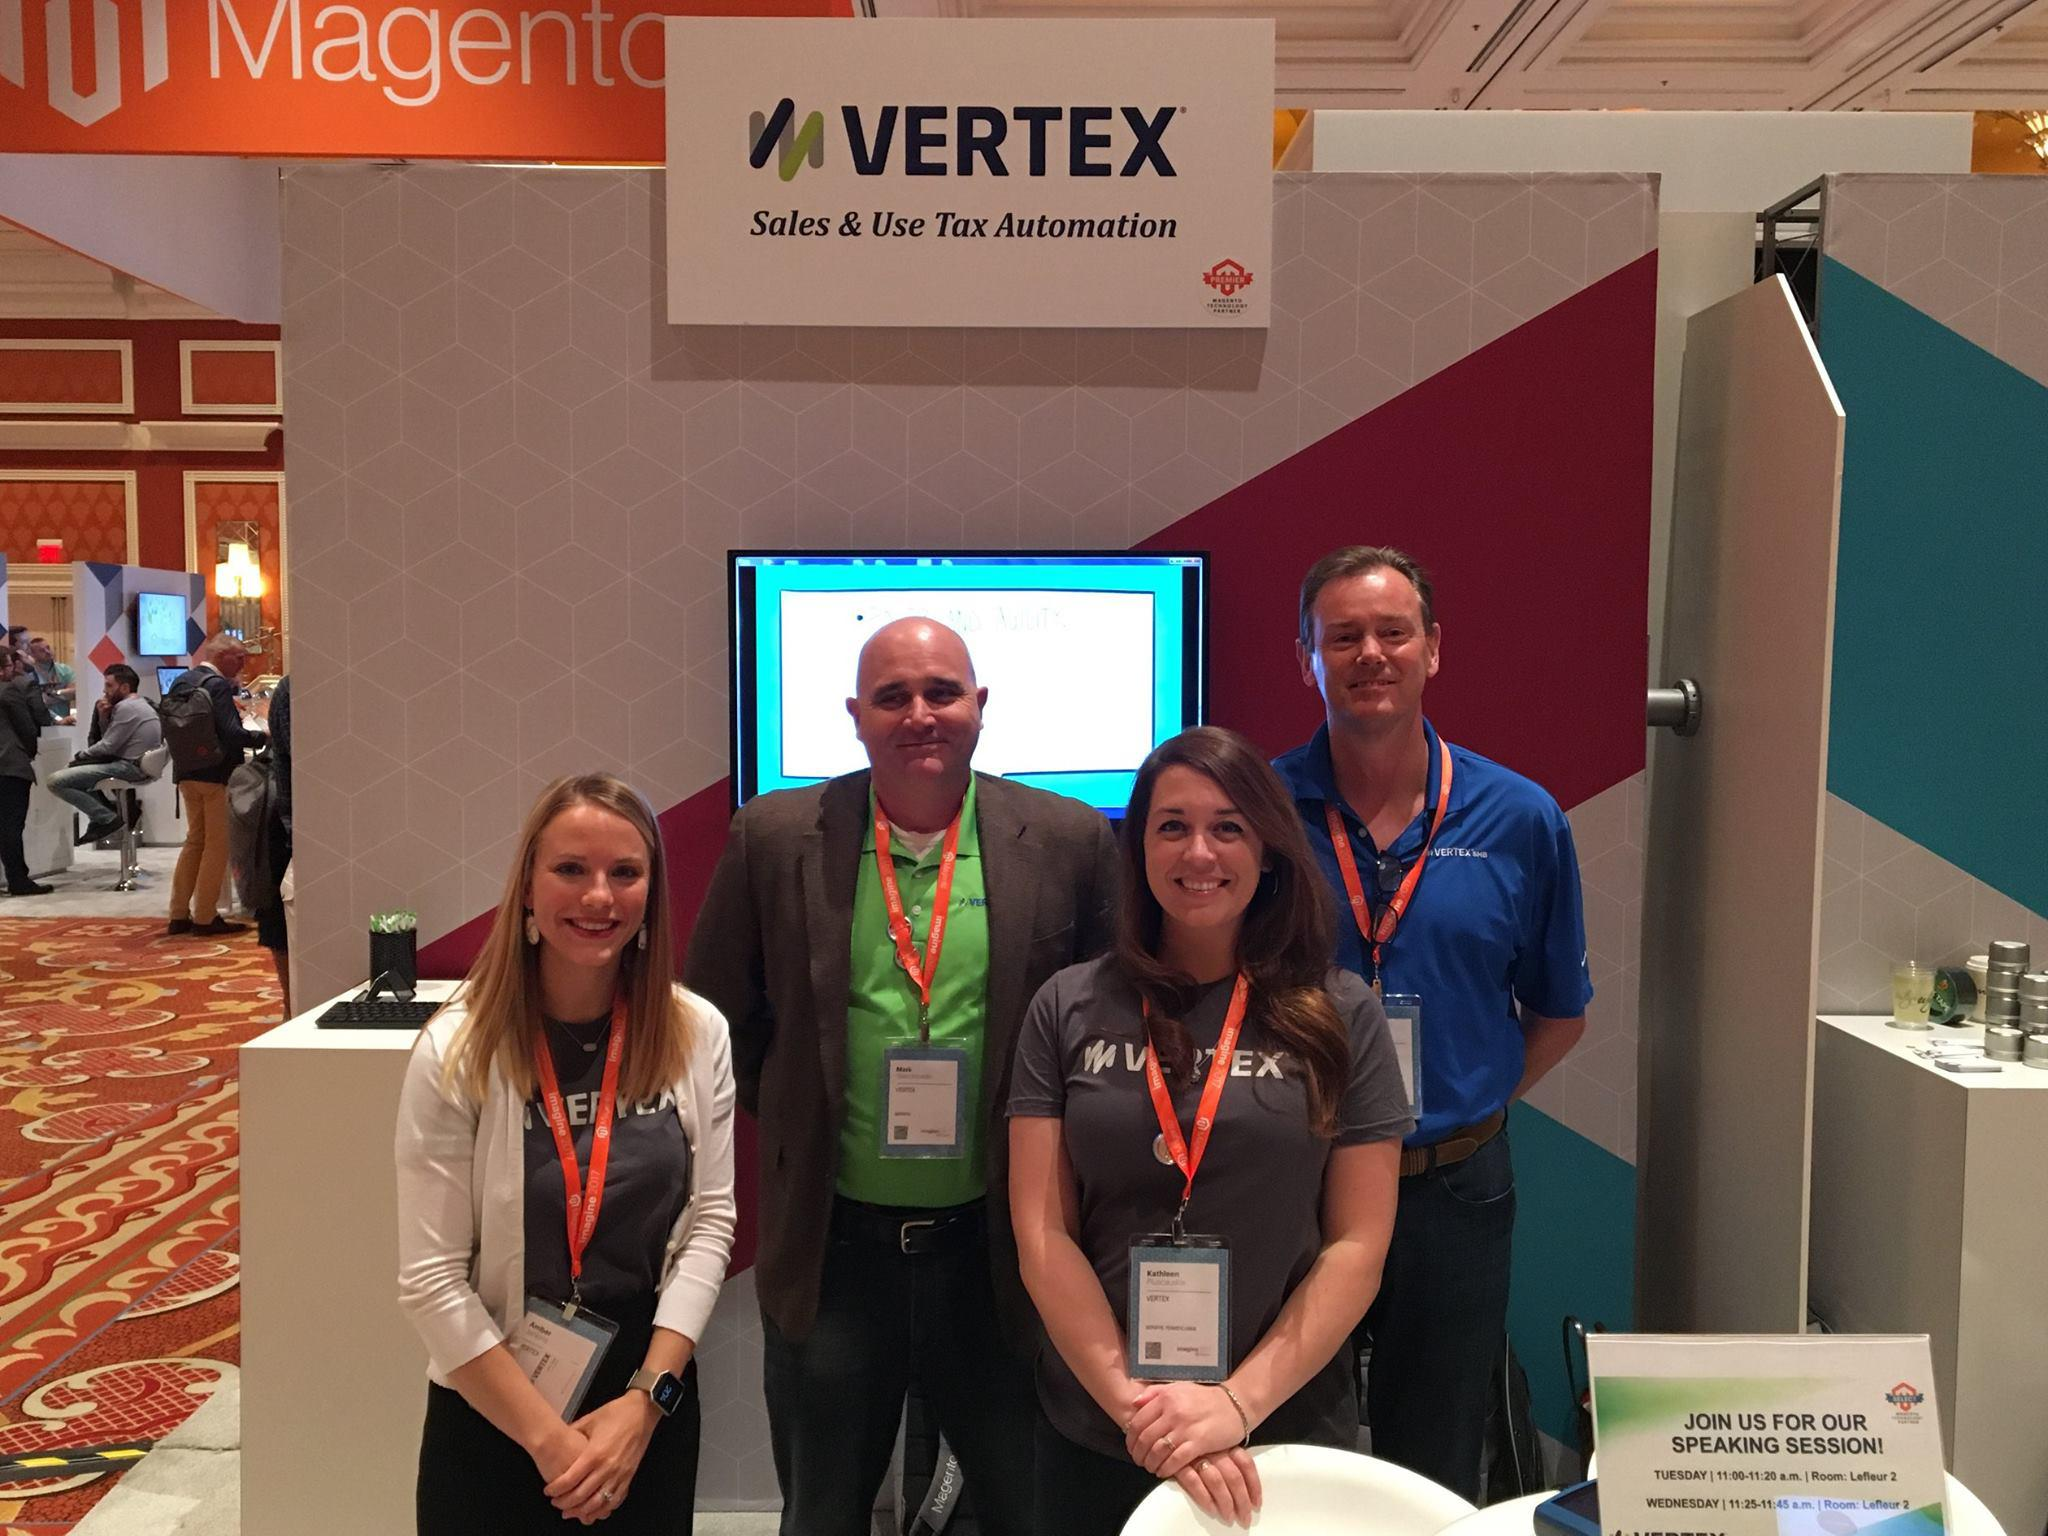 Vertex Magento Imagine Image